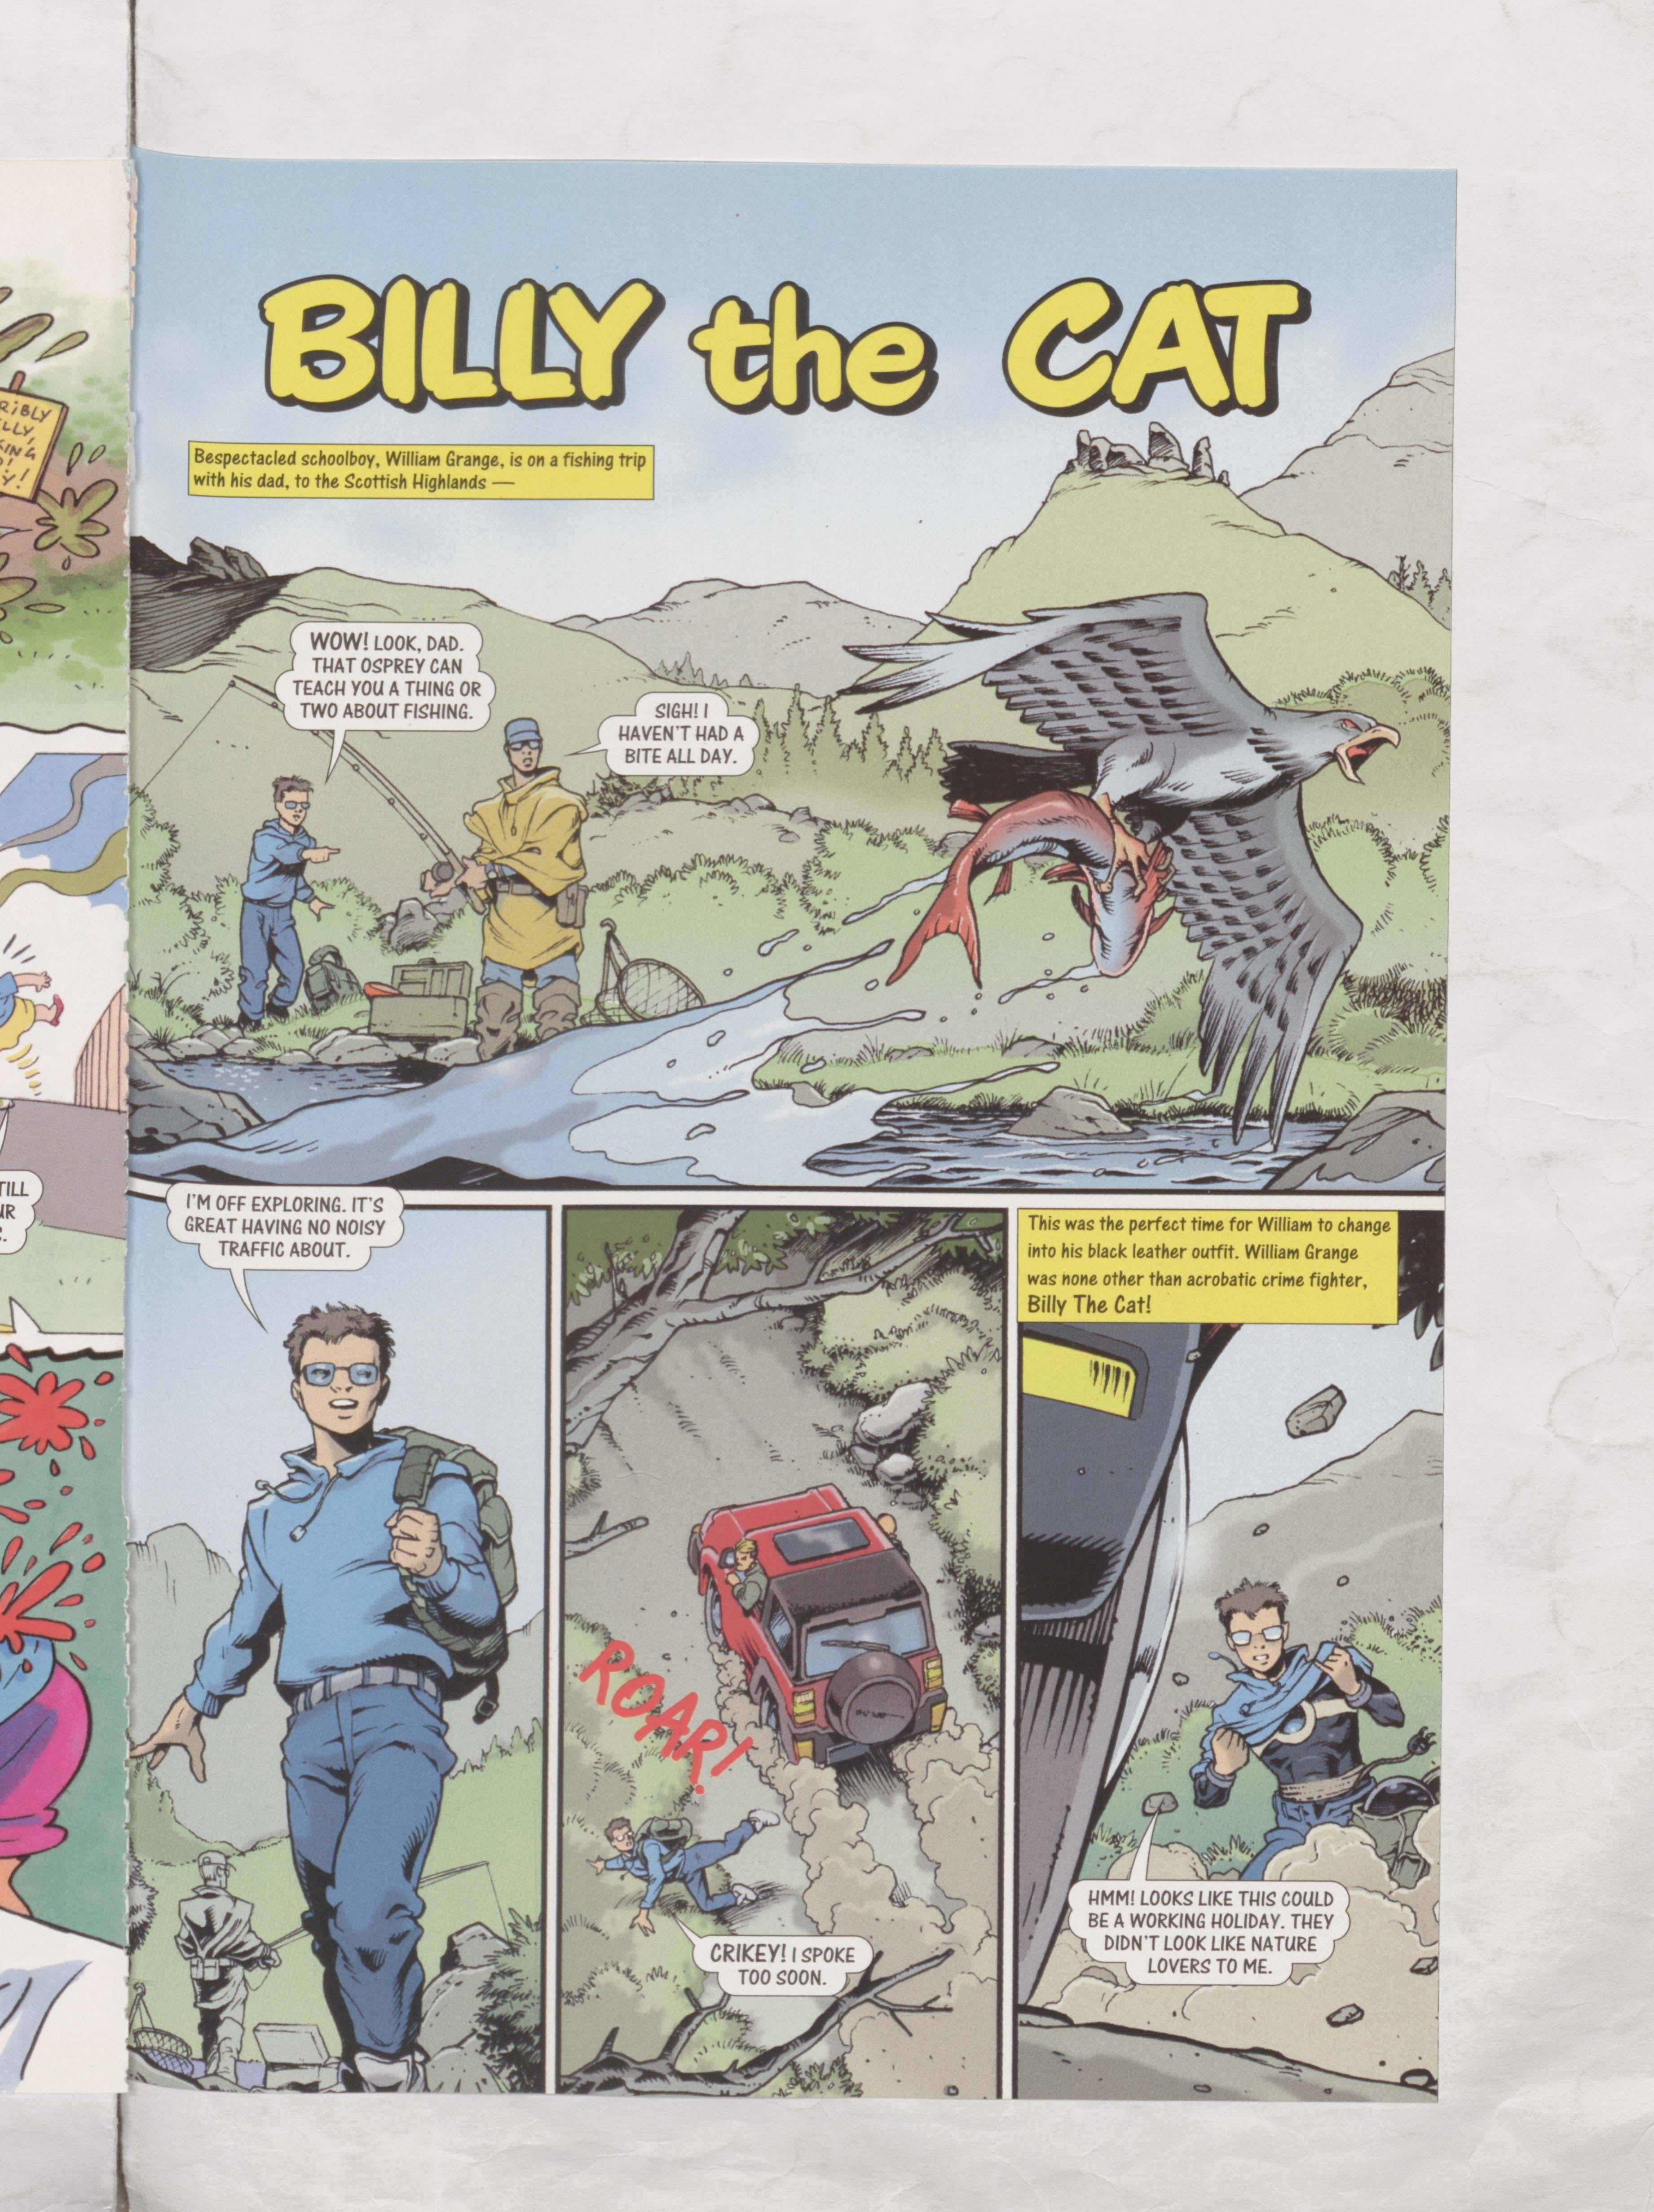 Billy the Cat - Beano Annual 2004